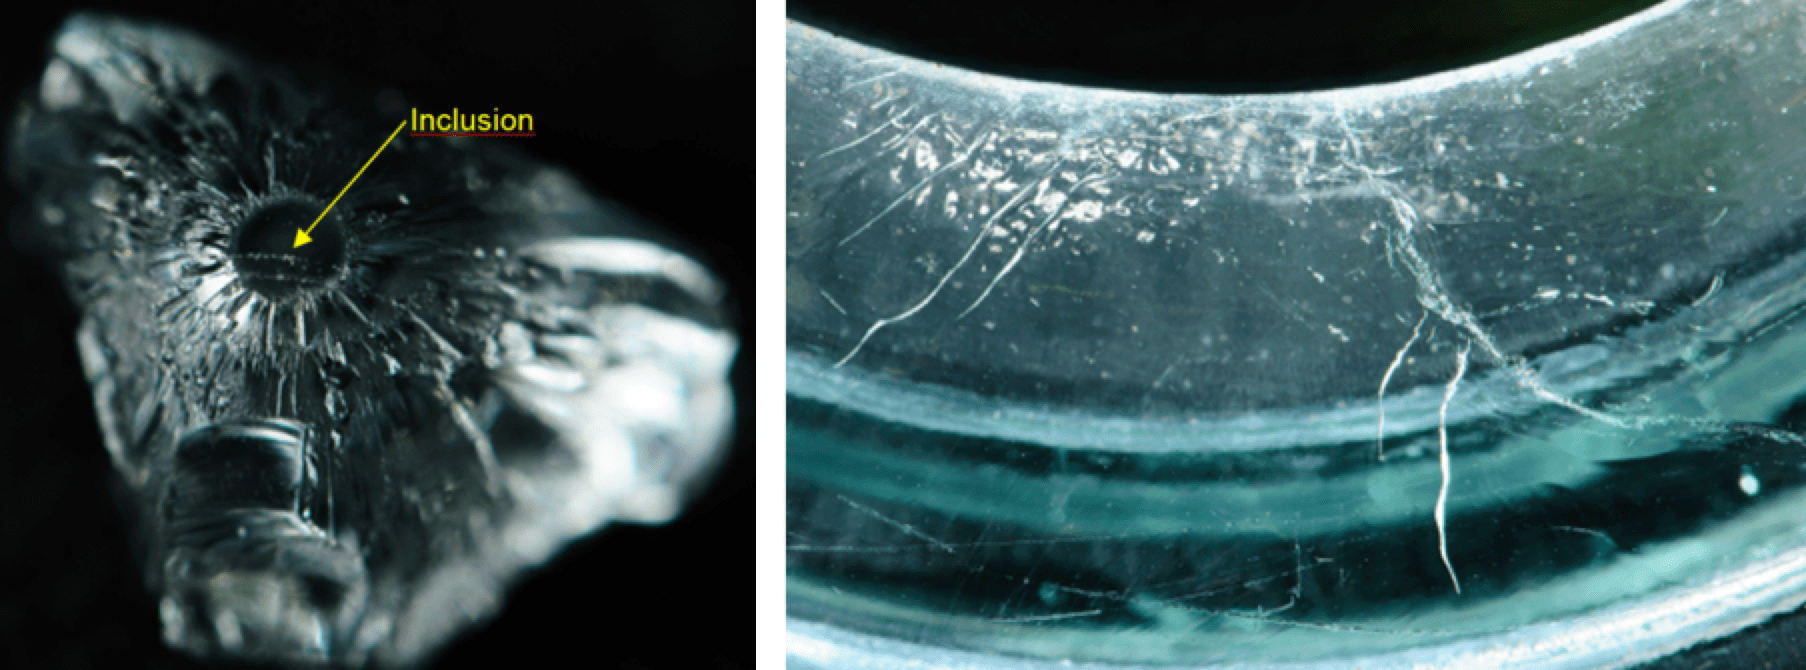 glass insulator Expanded Test Criteria to Ensure Glass Insulator Quality Glass fragment contains inclusion that